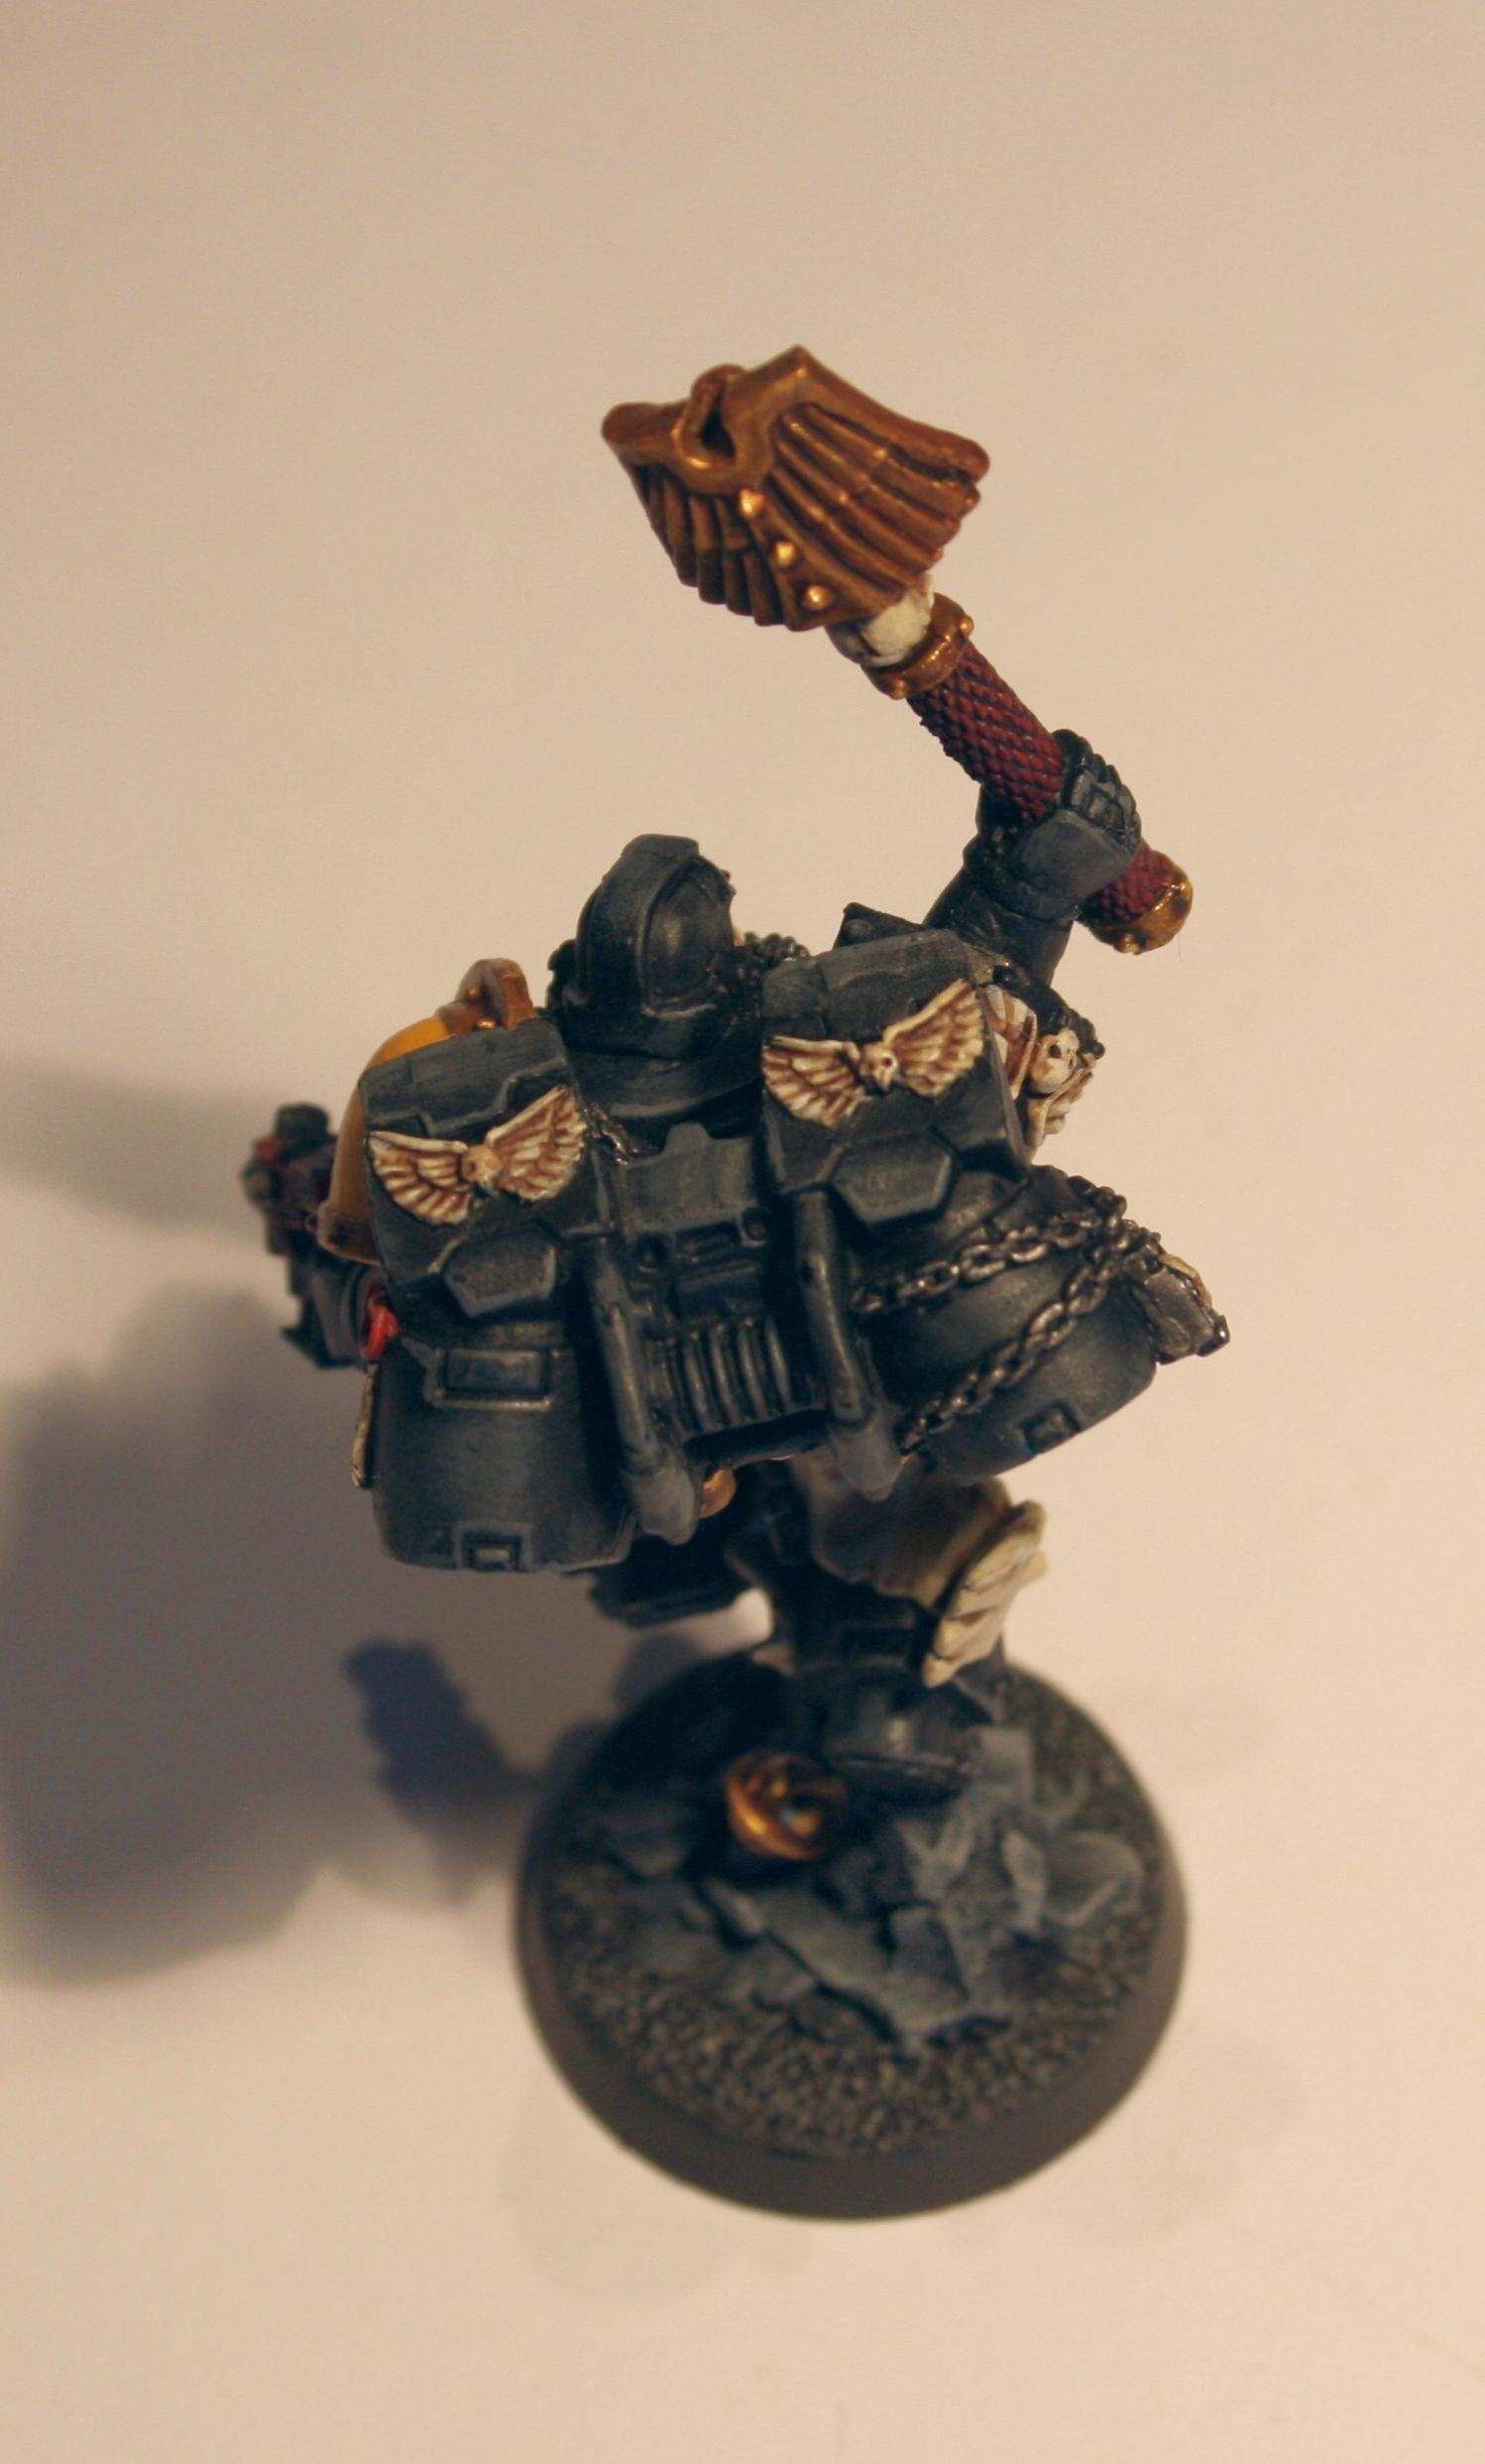 Chaplain, Imperial Fists